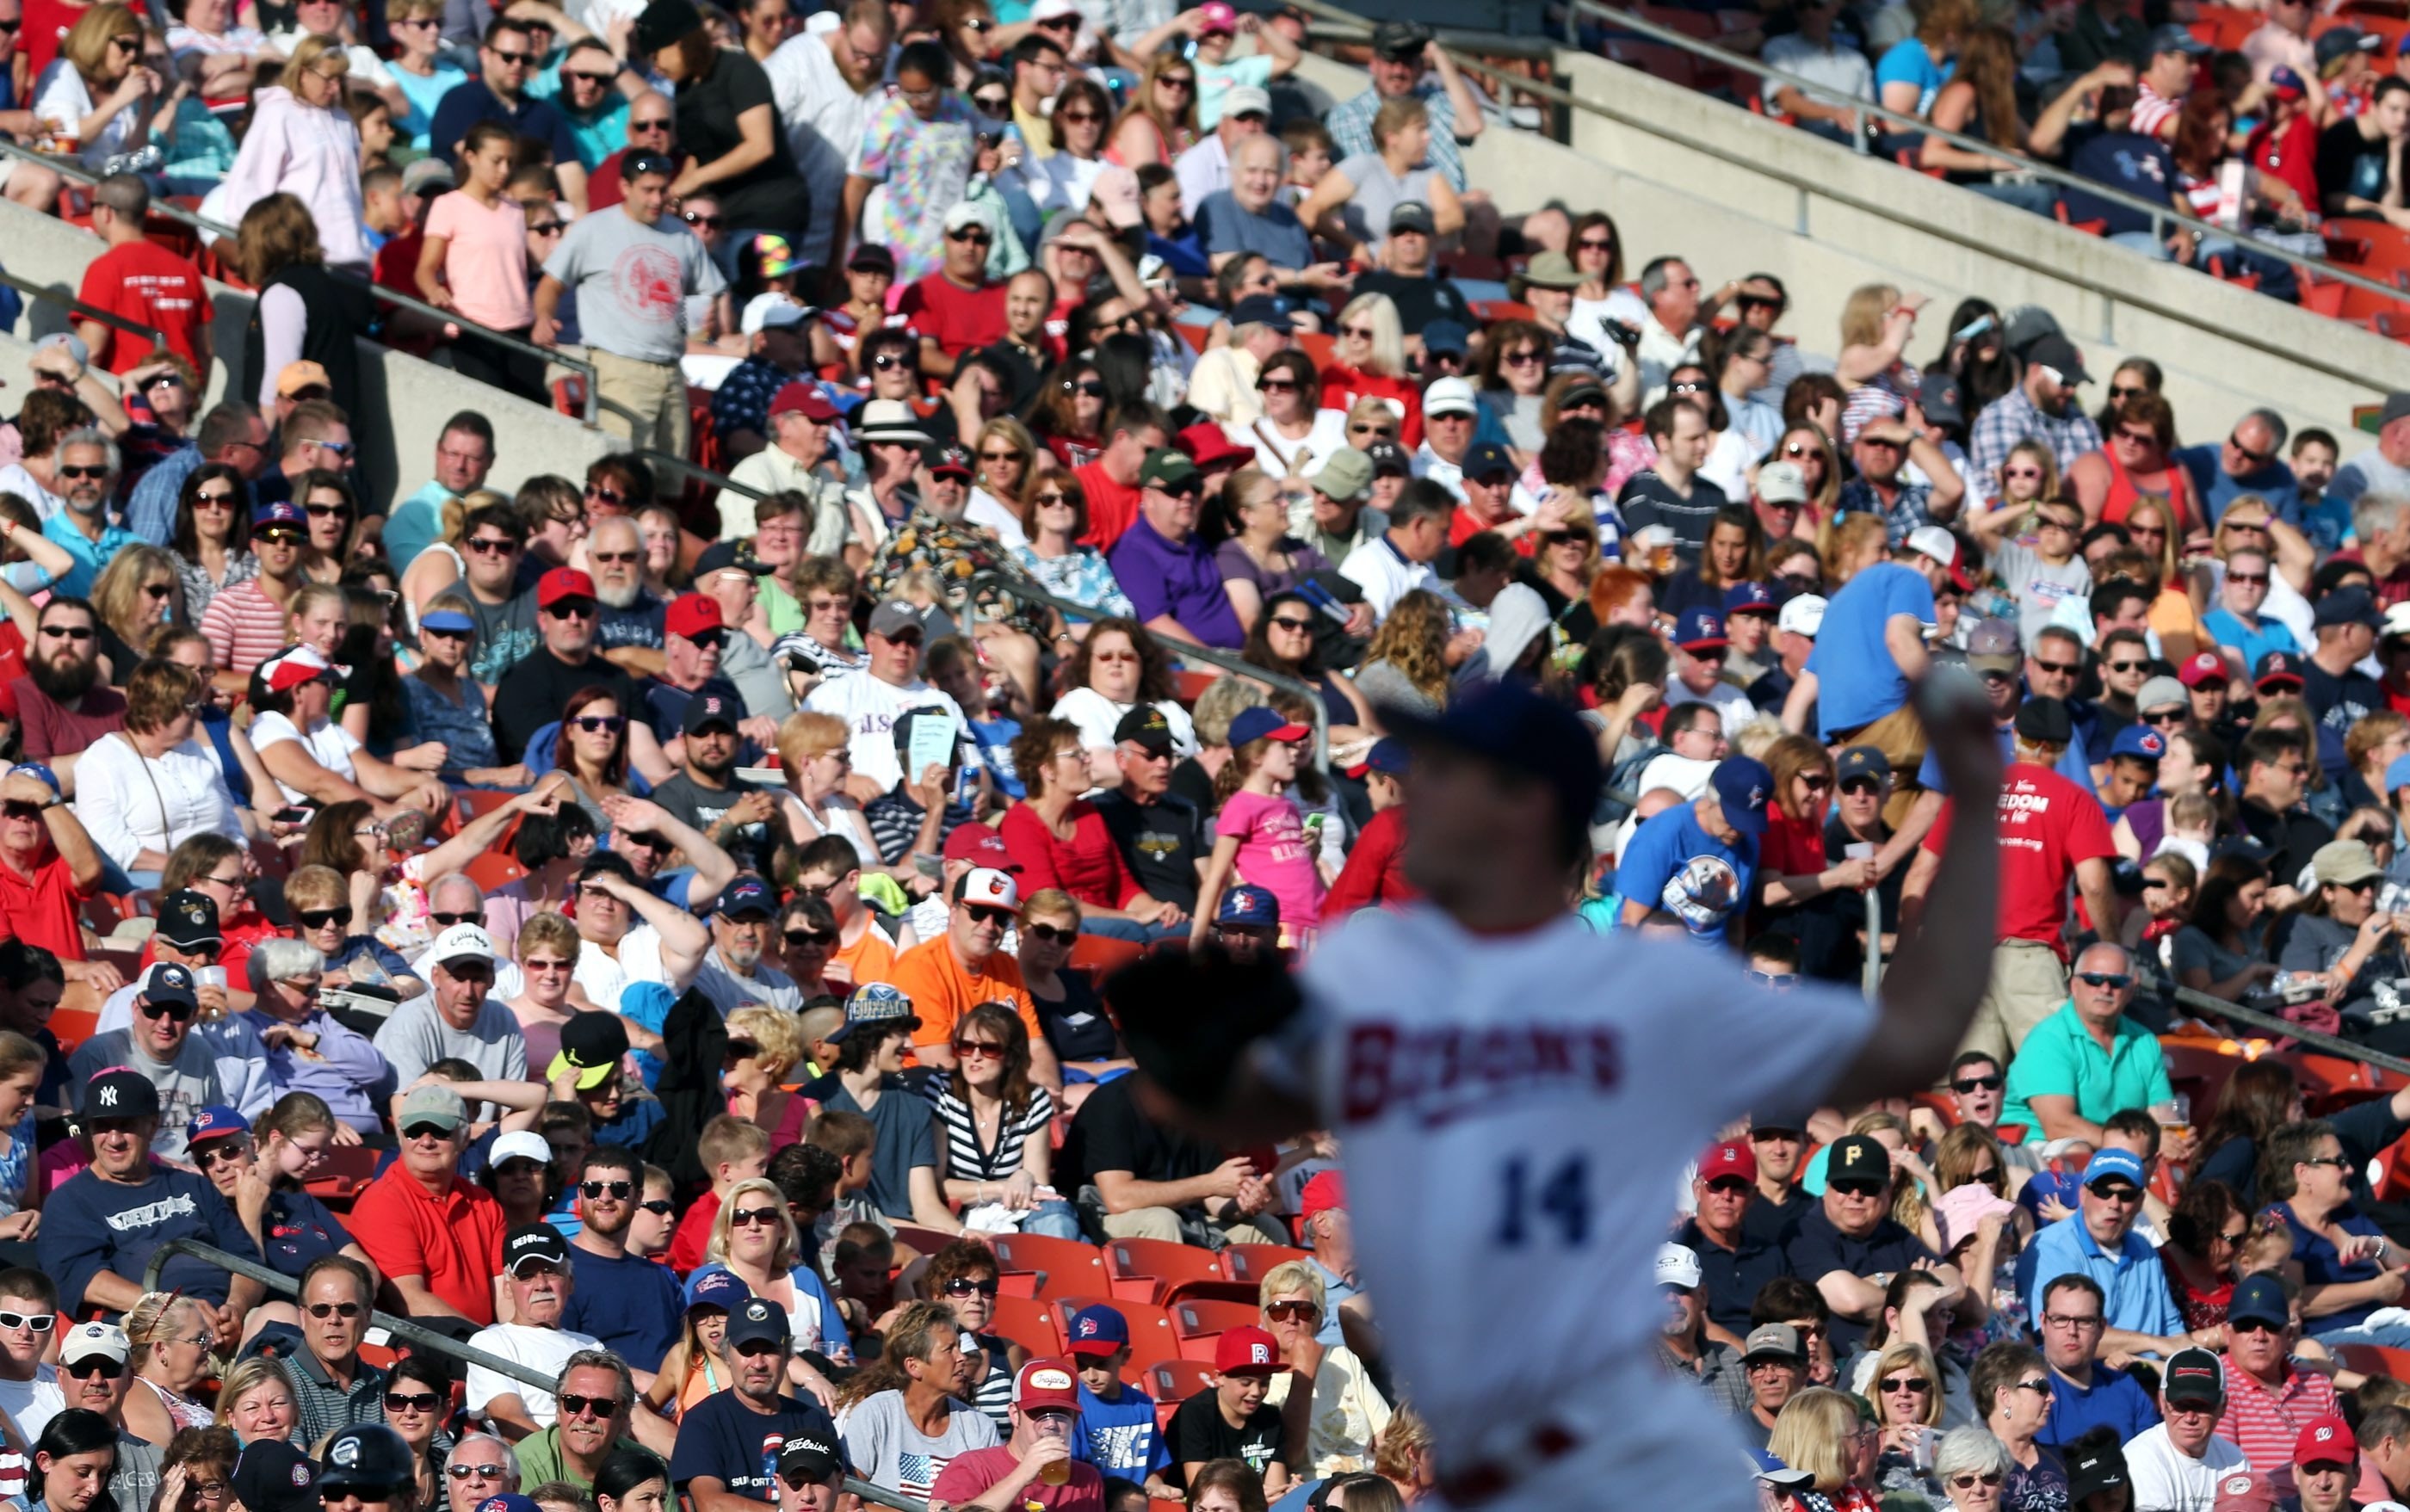 The Bisons enjoyed playing in front of a nearly full house at Coca-Cola Field during the annual Independence Eve game.